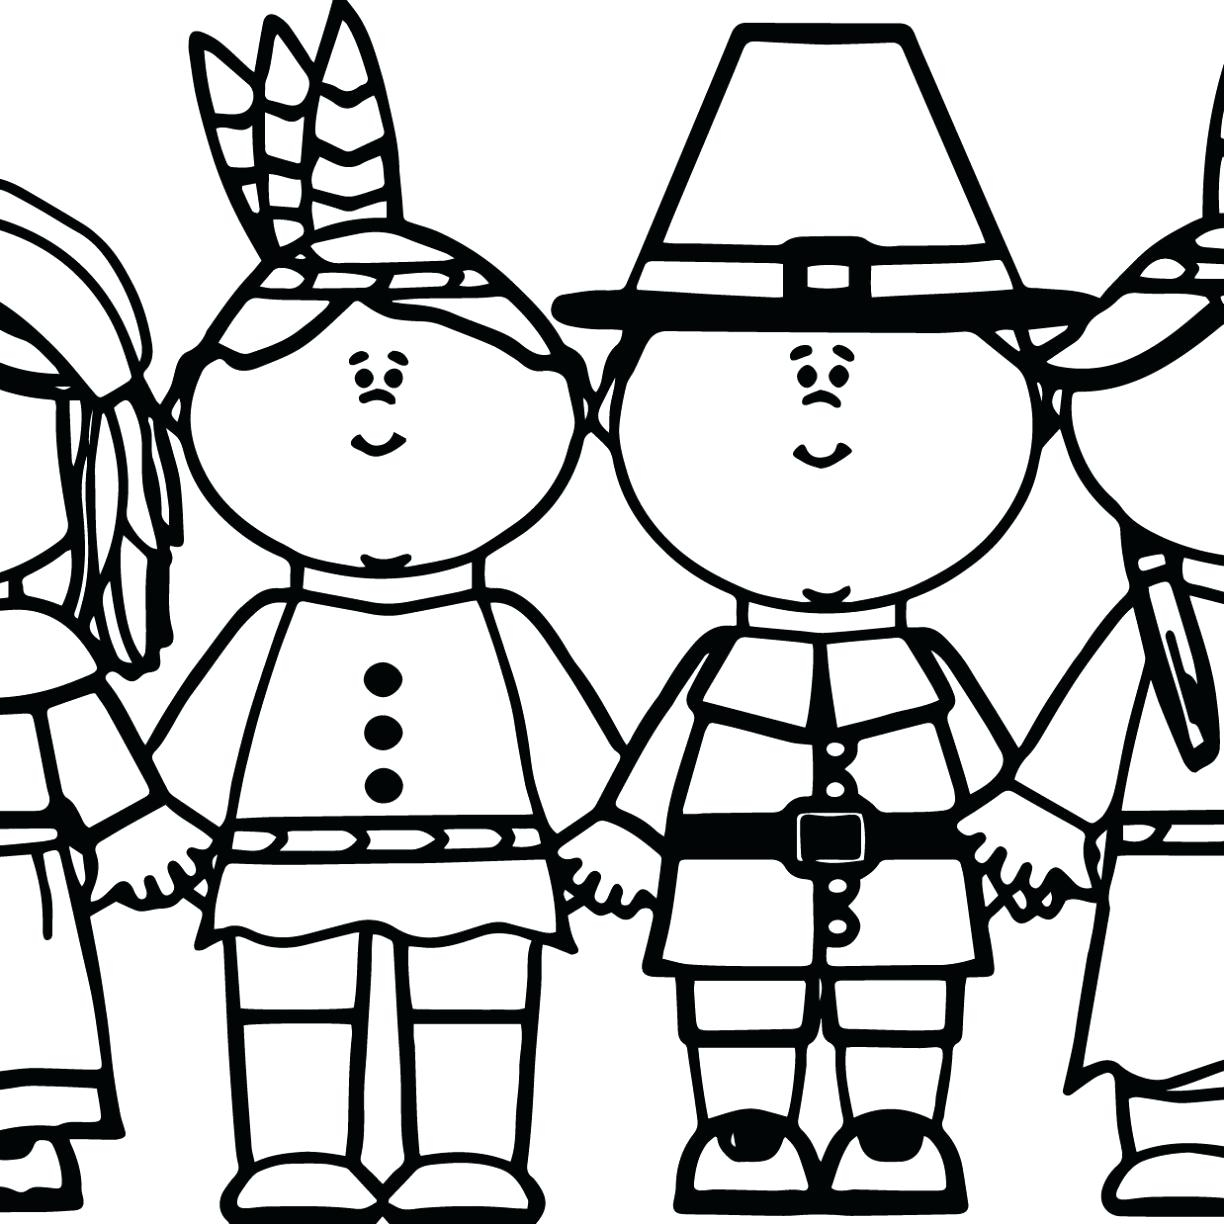 Listening Coloring Pages At Getcolorings